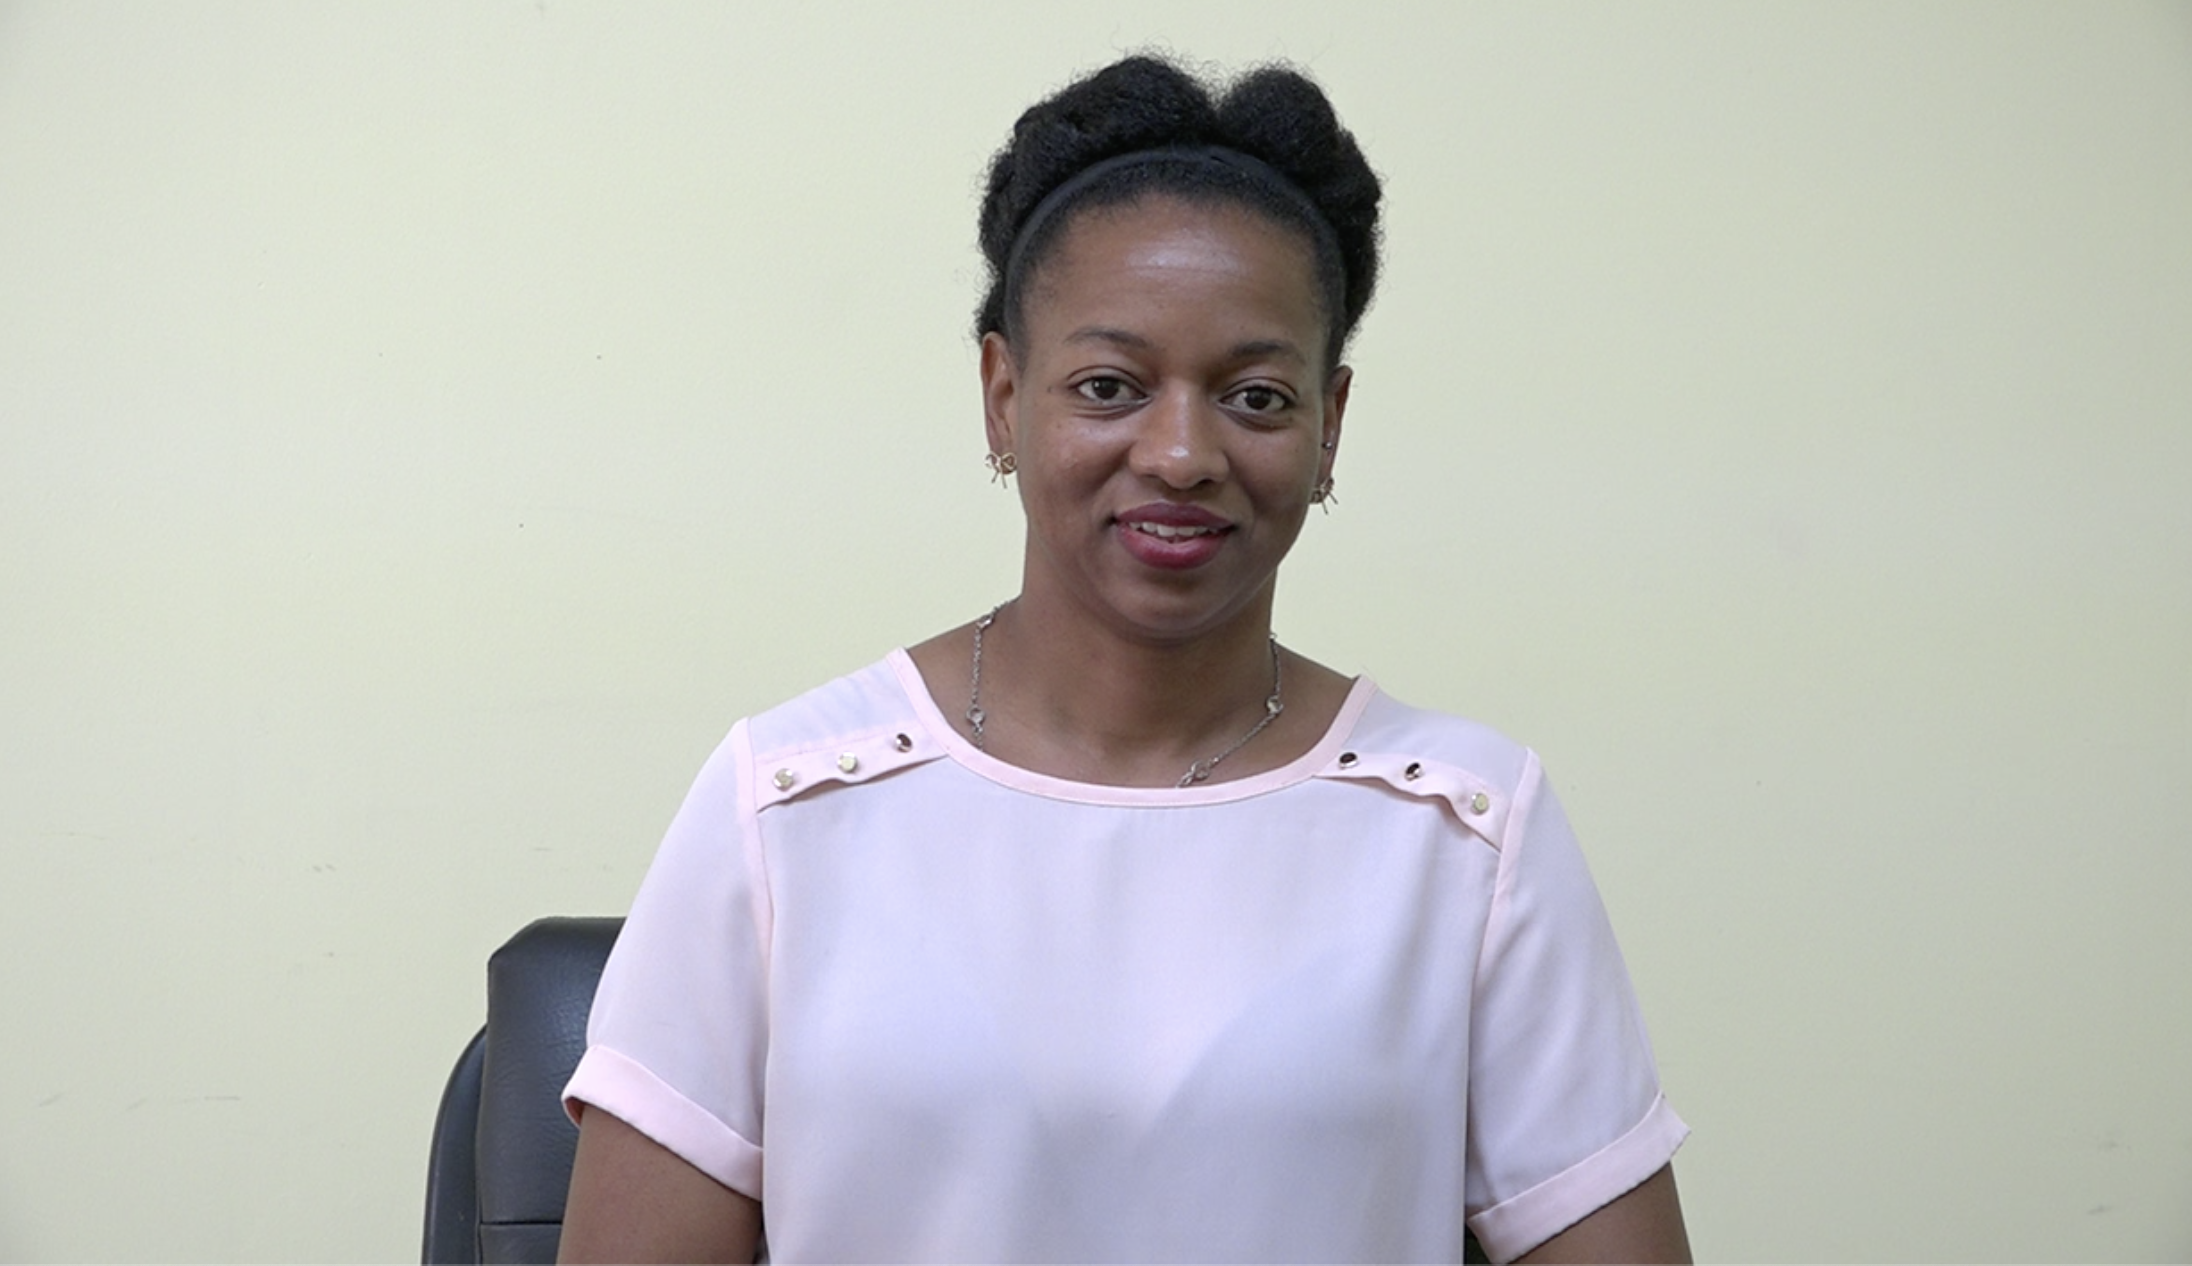 Ms. Shevanée Nisbett, Senior Health Educator at the Health Promotion Unit in the Ministry of Health on Nevis, at the Department of Information on October 20, 2020